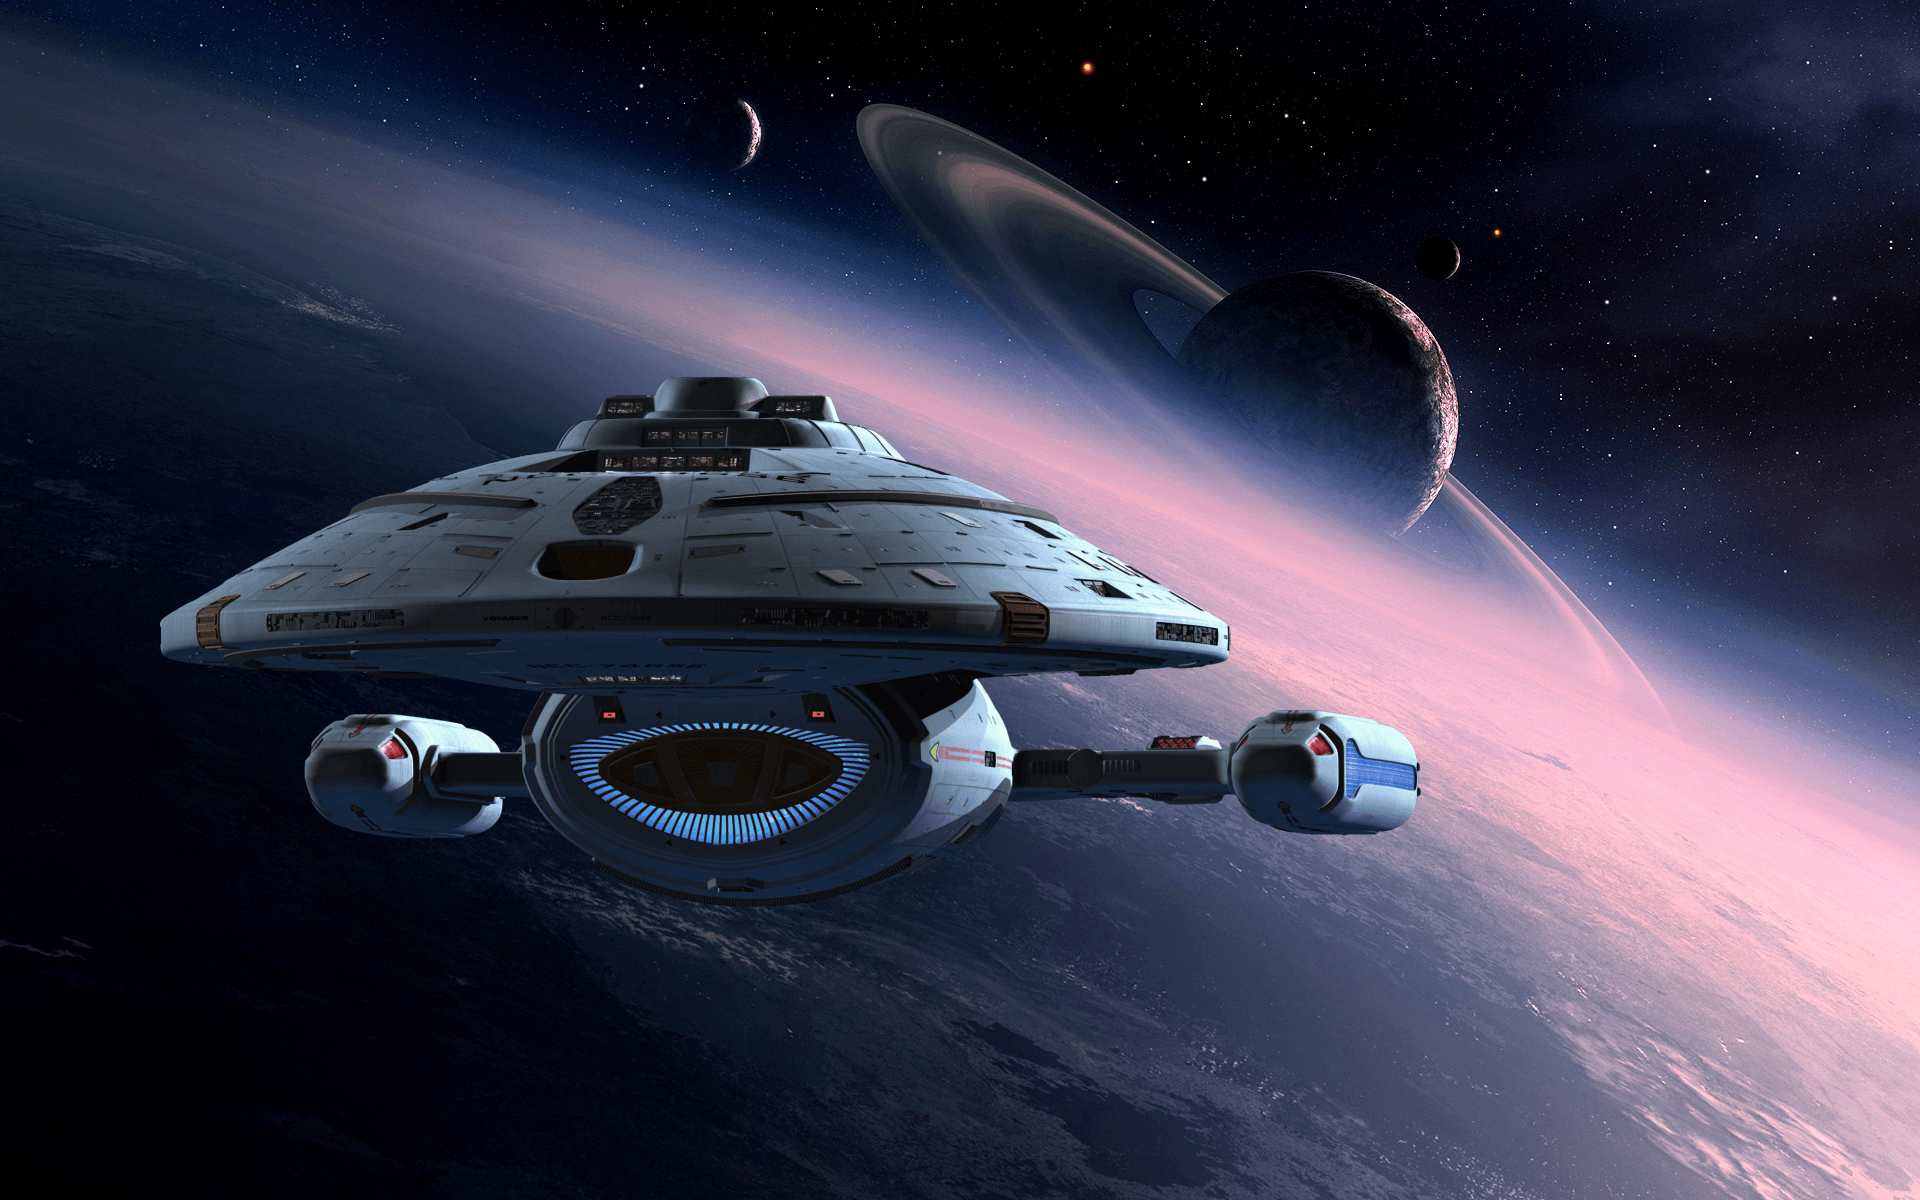 27 Star Trek: Voyager HD Wallpapers